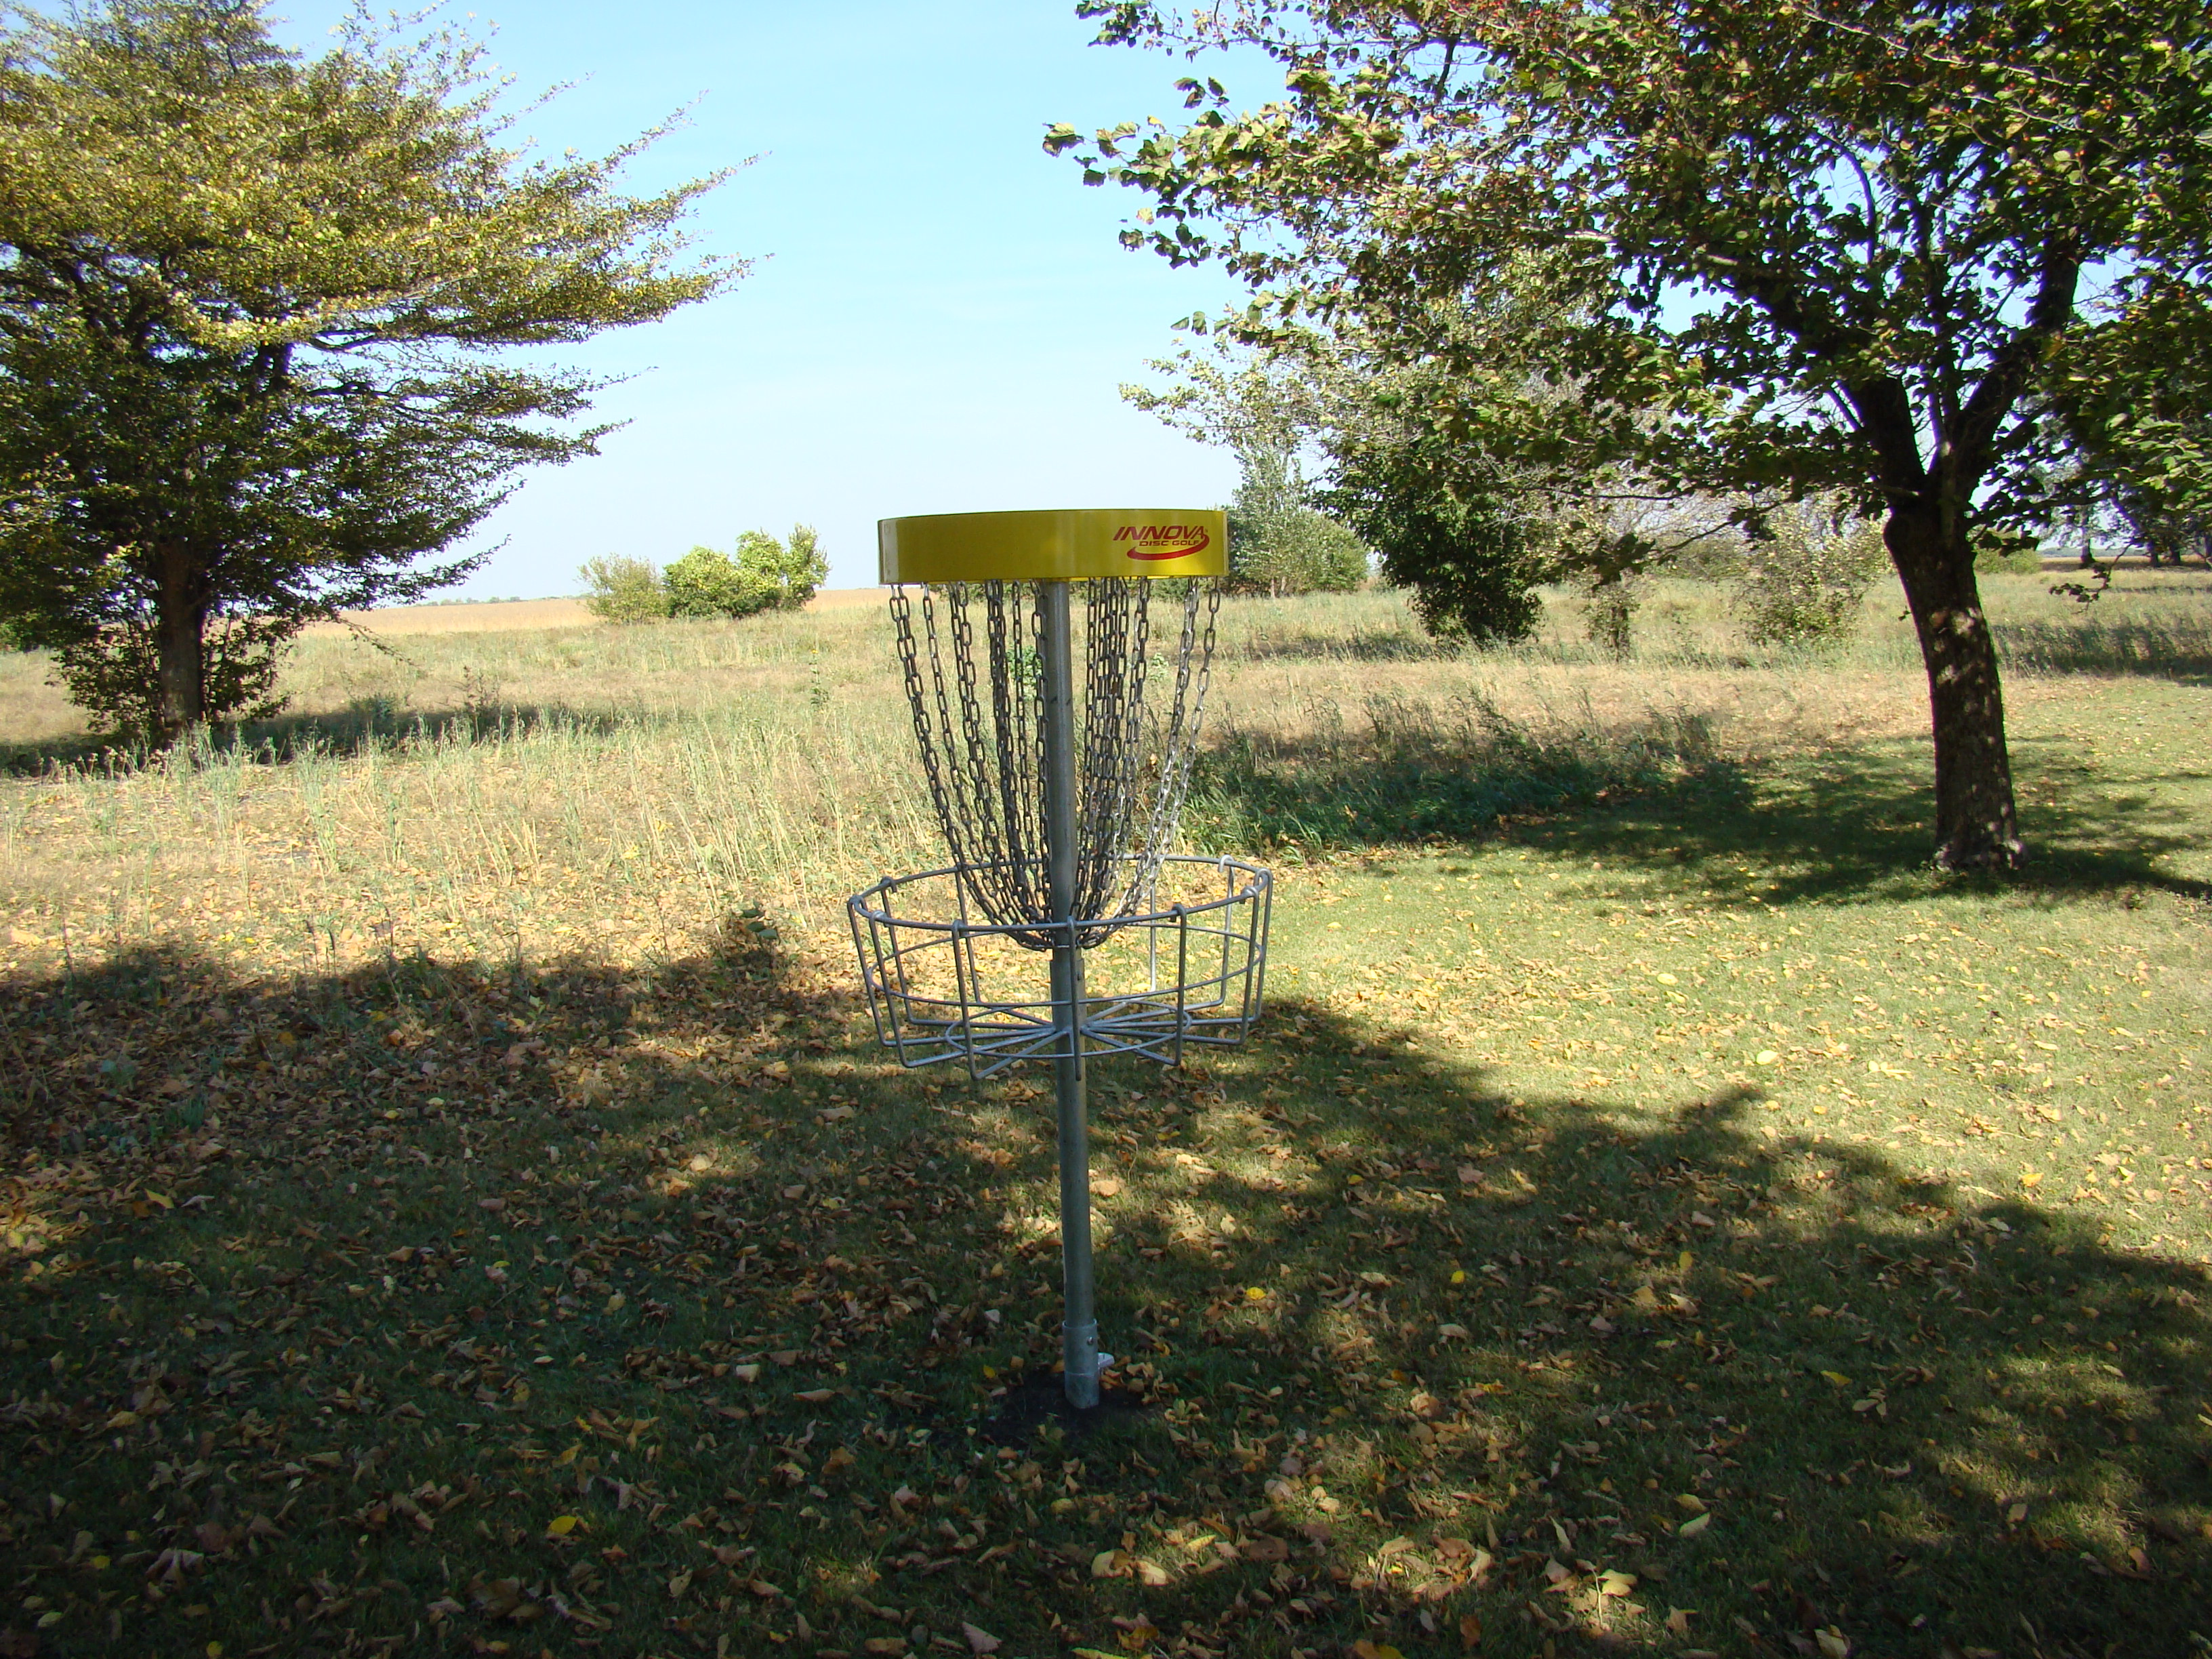 Frisbee golf basket at Daly Park & Campground.